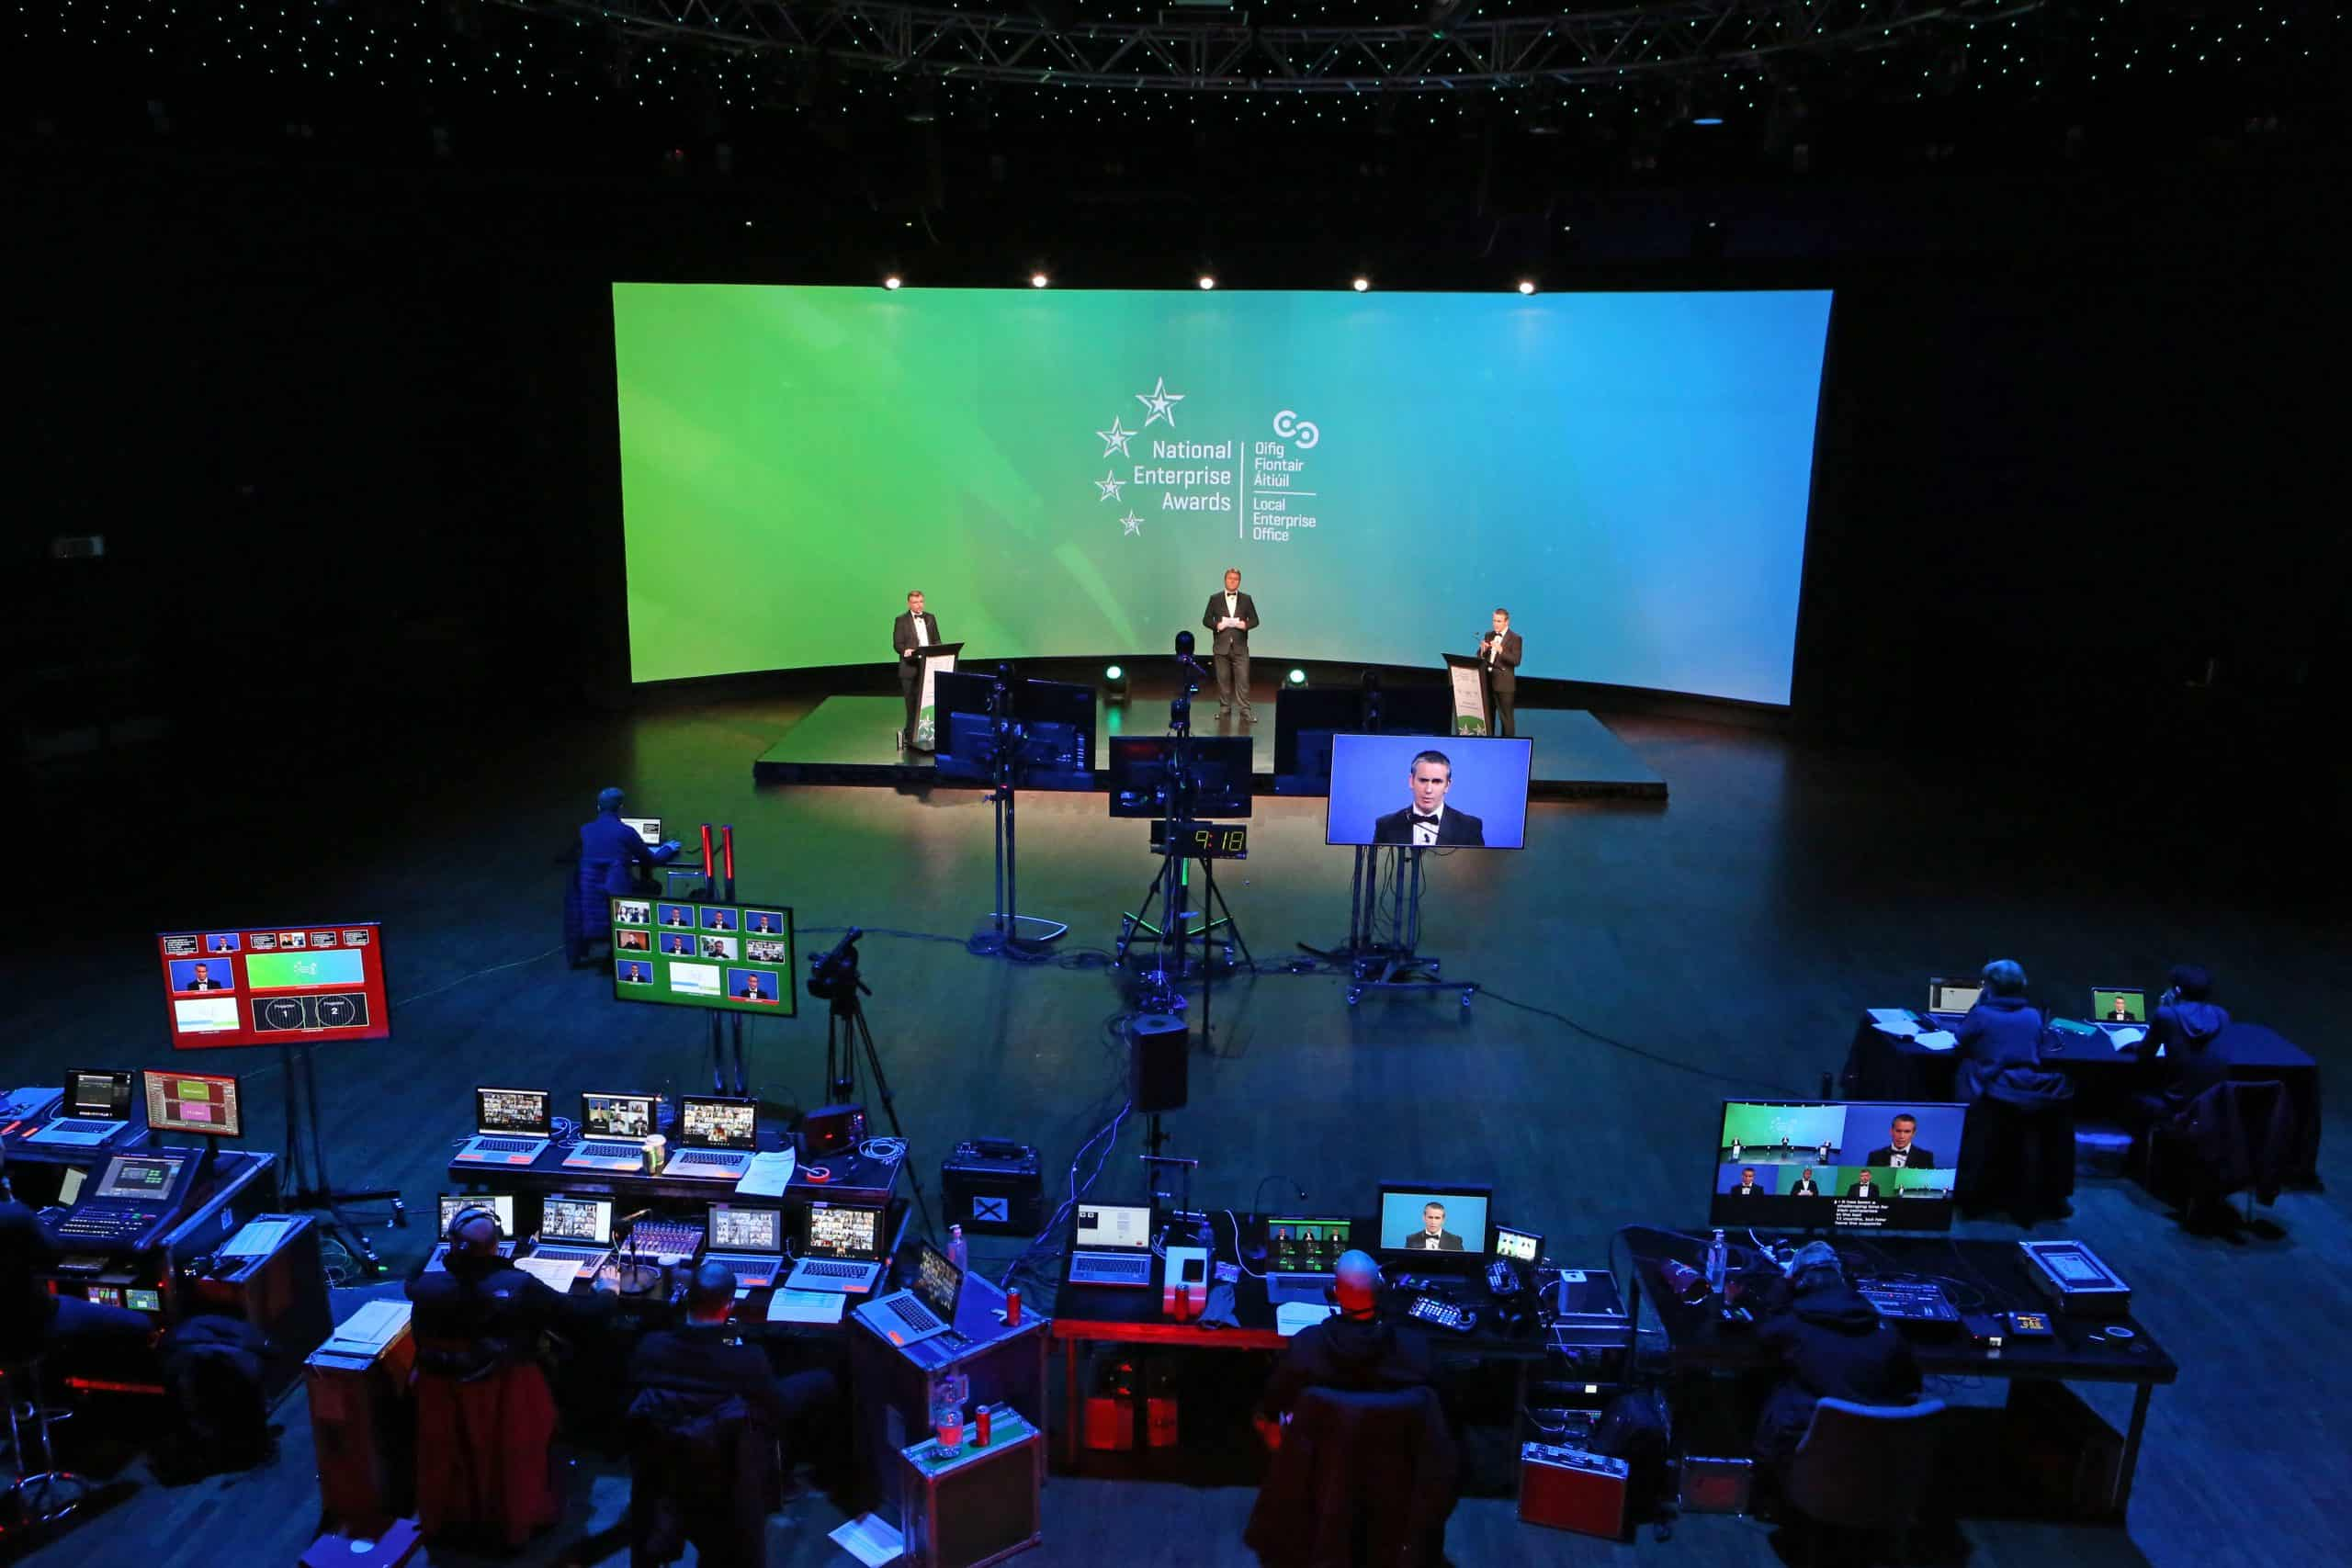 Noel Davidson hosts the National Enterprise Awards live from The Round Room of The Mansion House with Oisin Geoghegan & Minister Damien English on stage.